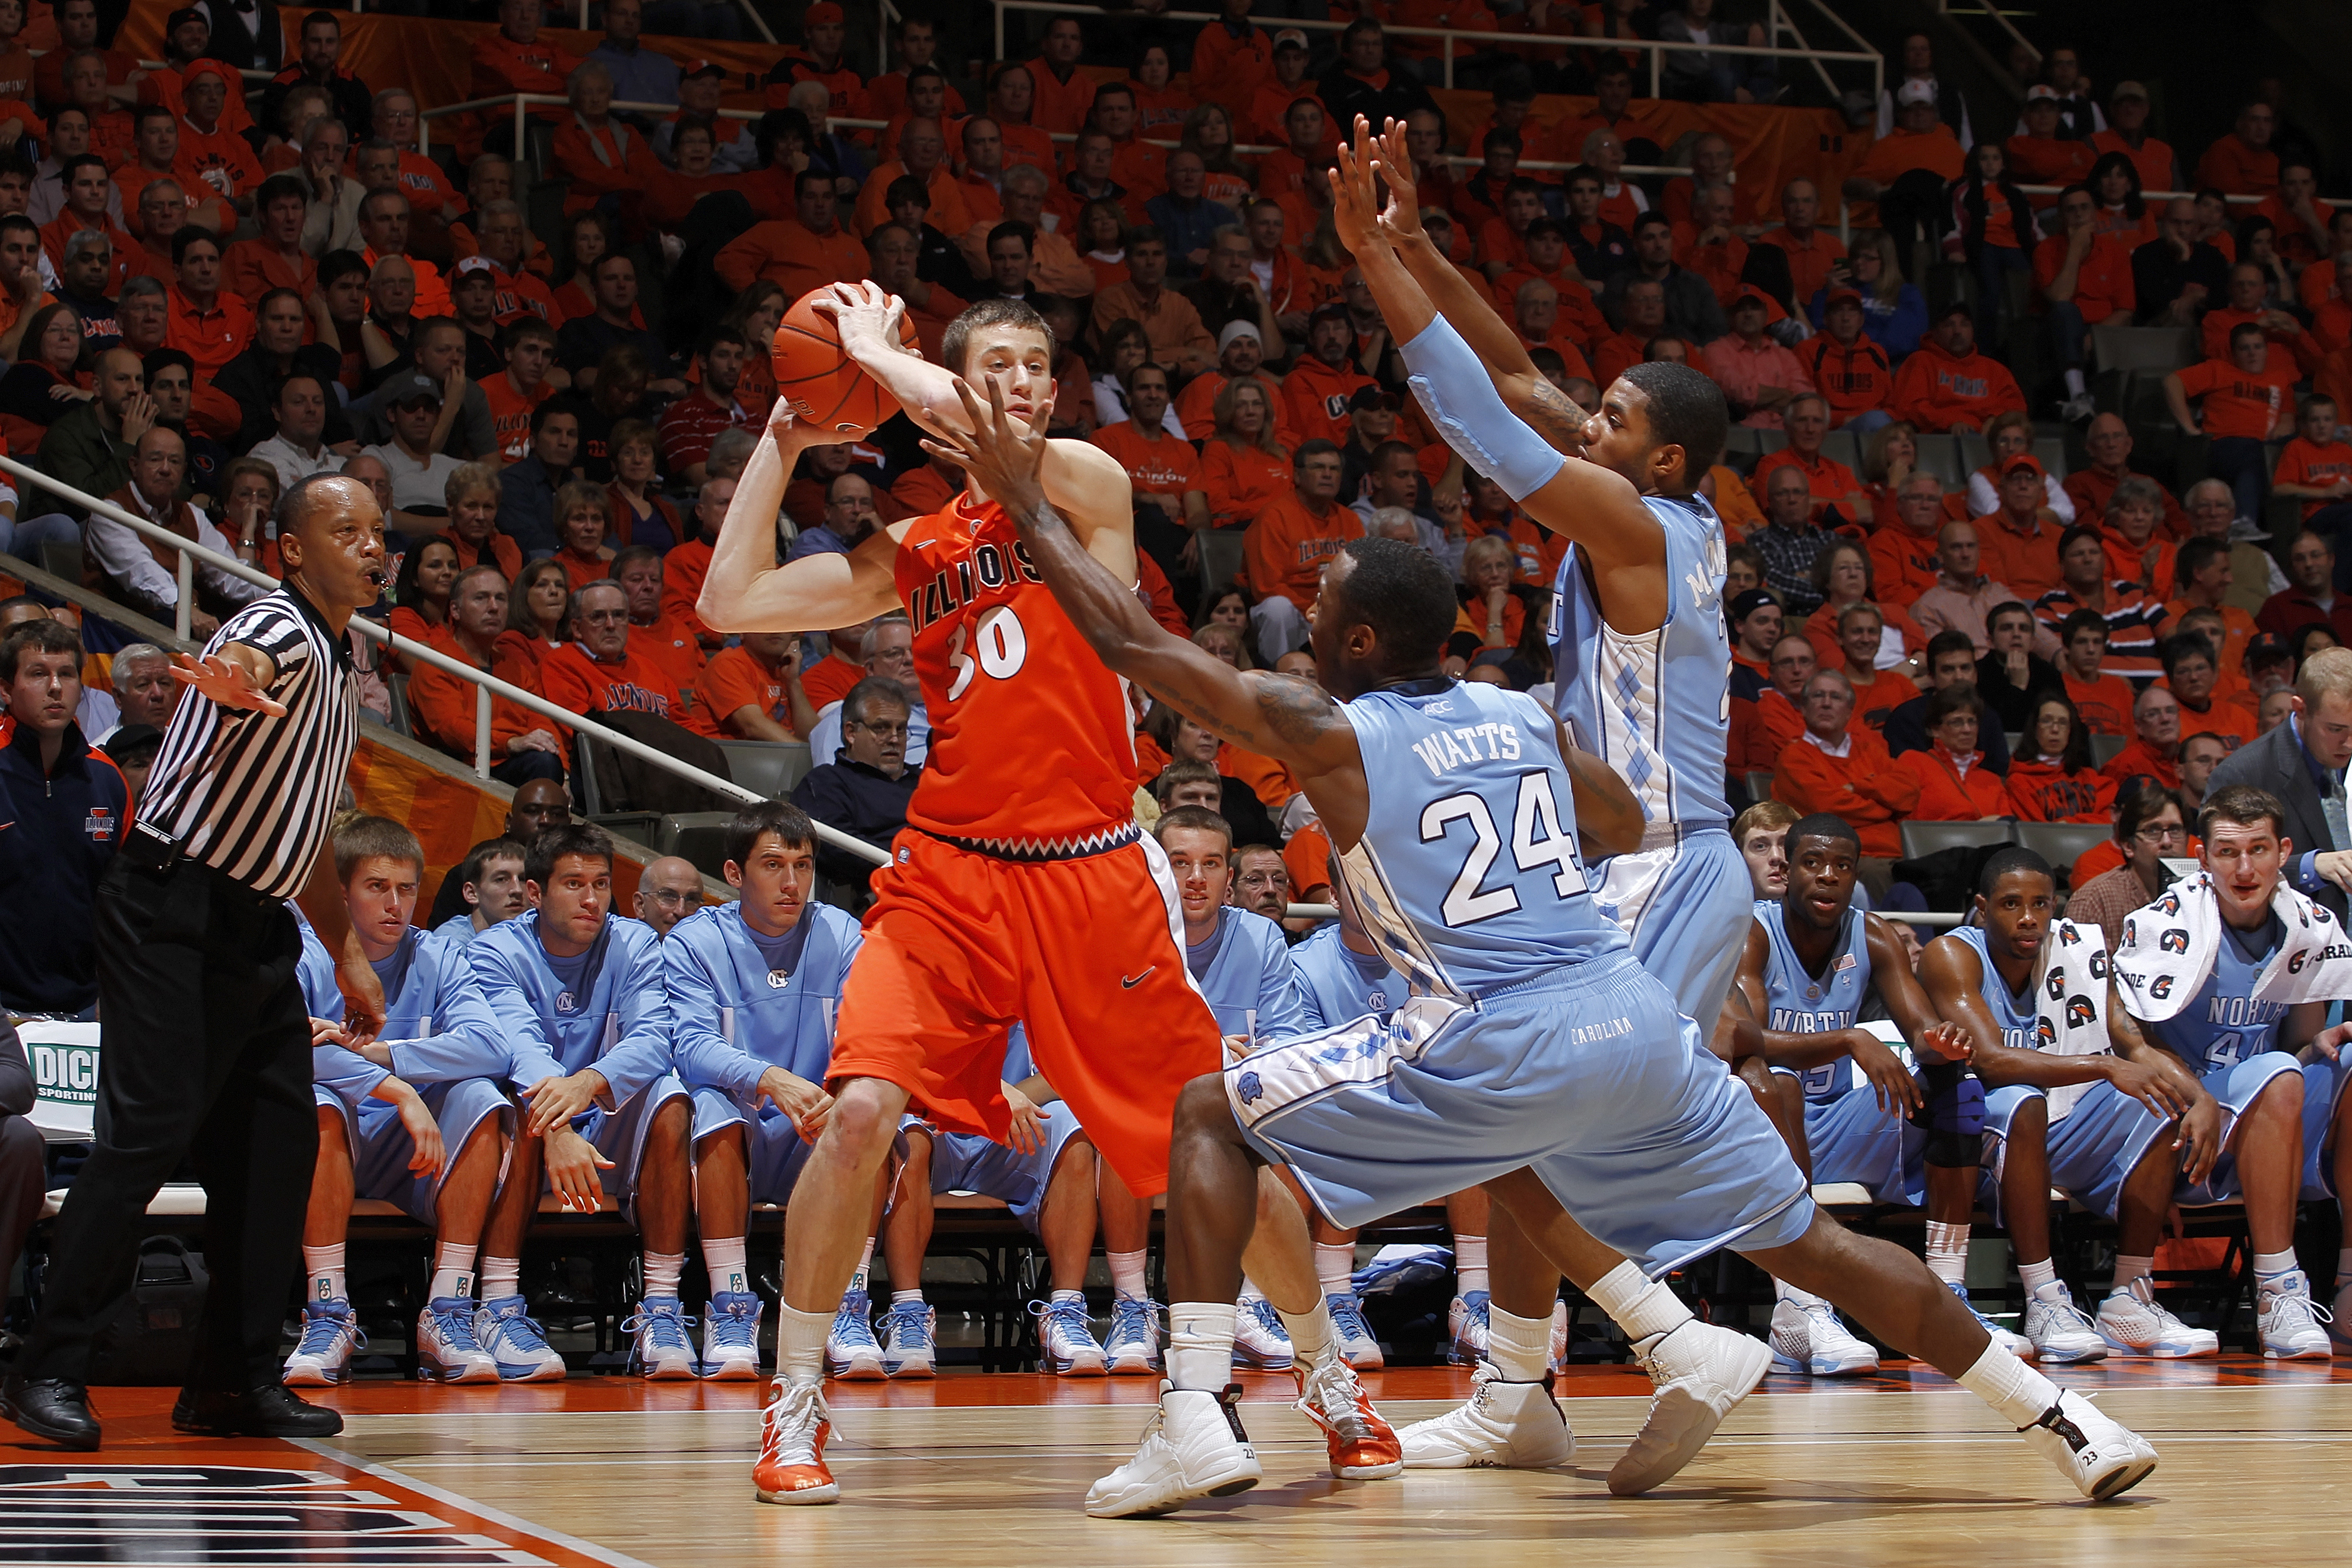 CHAMPAIGN, IL - NOVEMBER 30: Justin Watts #24 and Leslie McDonald #2 of the North Carolina Tar Heels defend against Bill Cole #30 of the Illinois Fighting Illini during the 2010 ACC/Big Ten Challenge at Assembly Hall on November 30, 2010 in Champaign, Ill